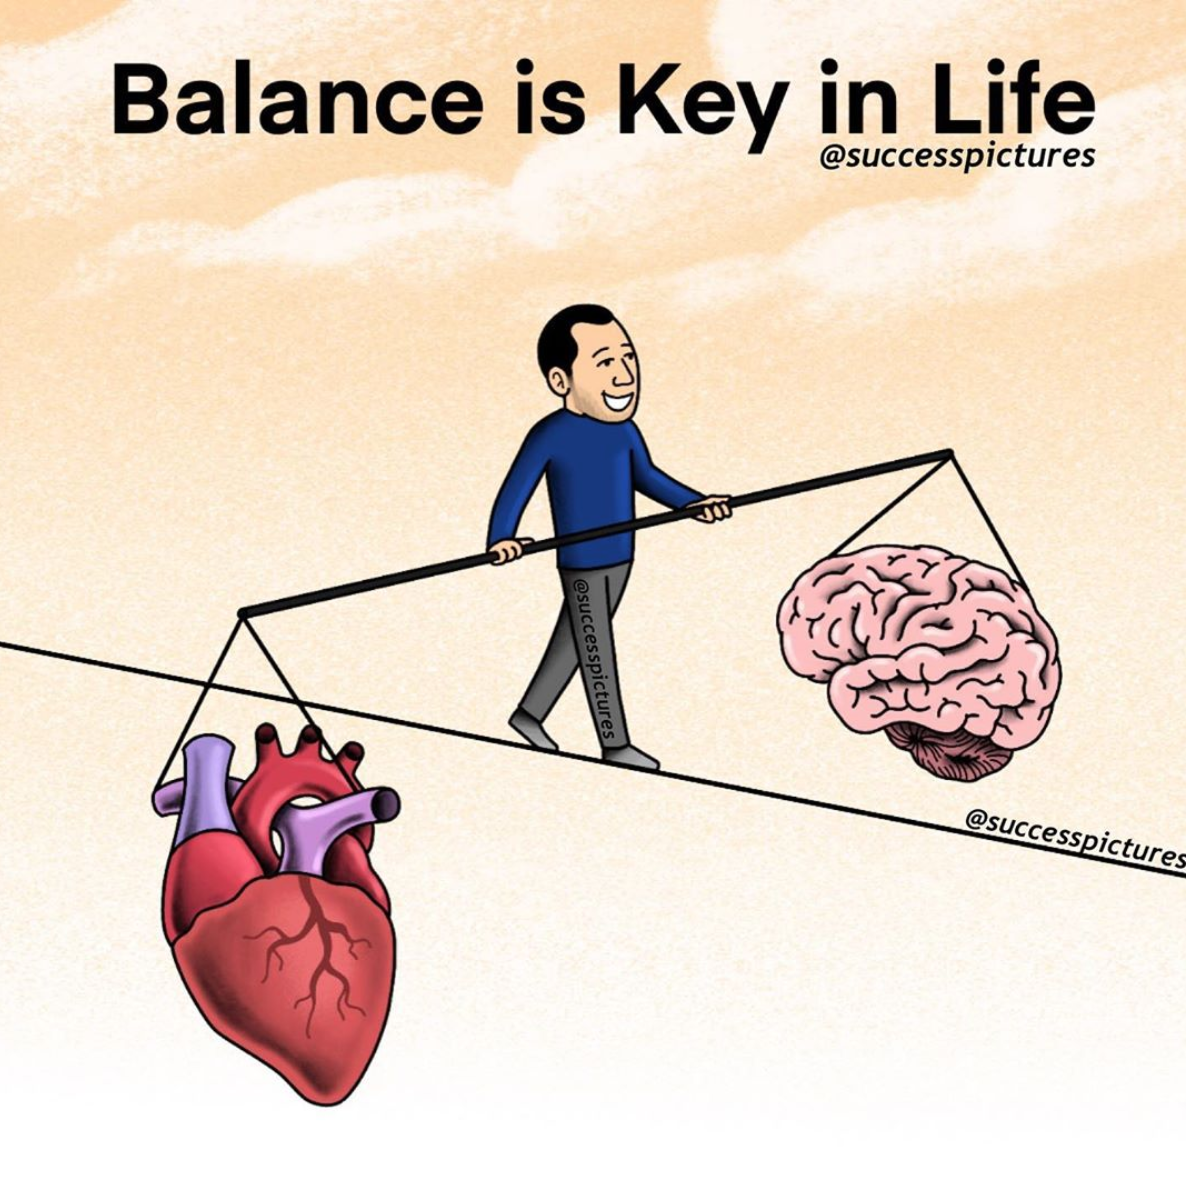 [Image] To live a happy life, you have to find the perfect balance between what your mind dictates and what your heart dictates.